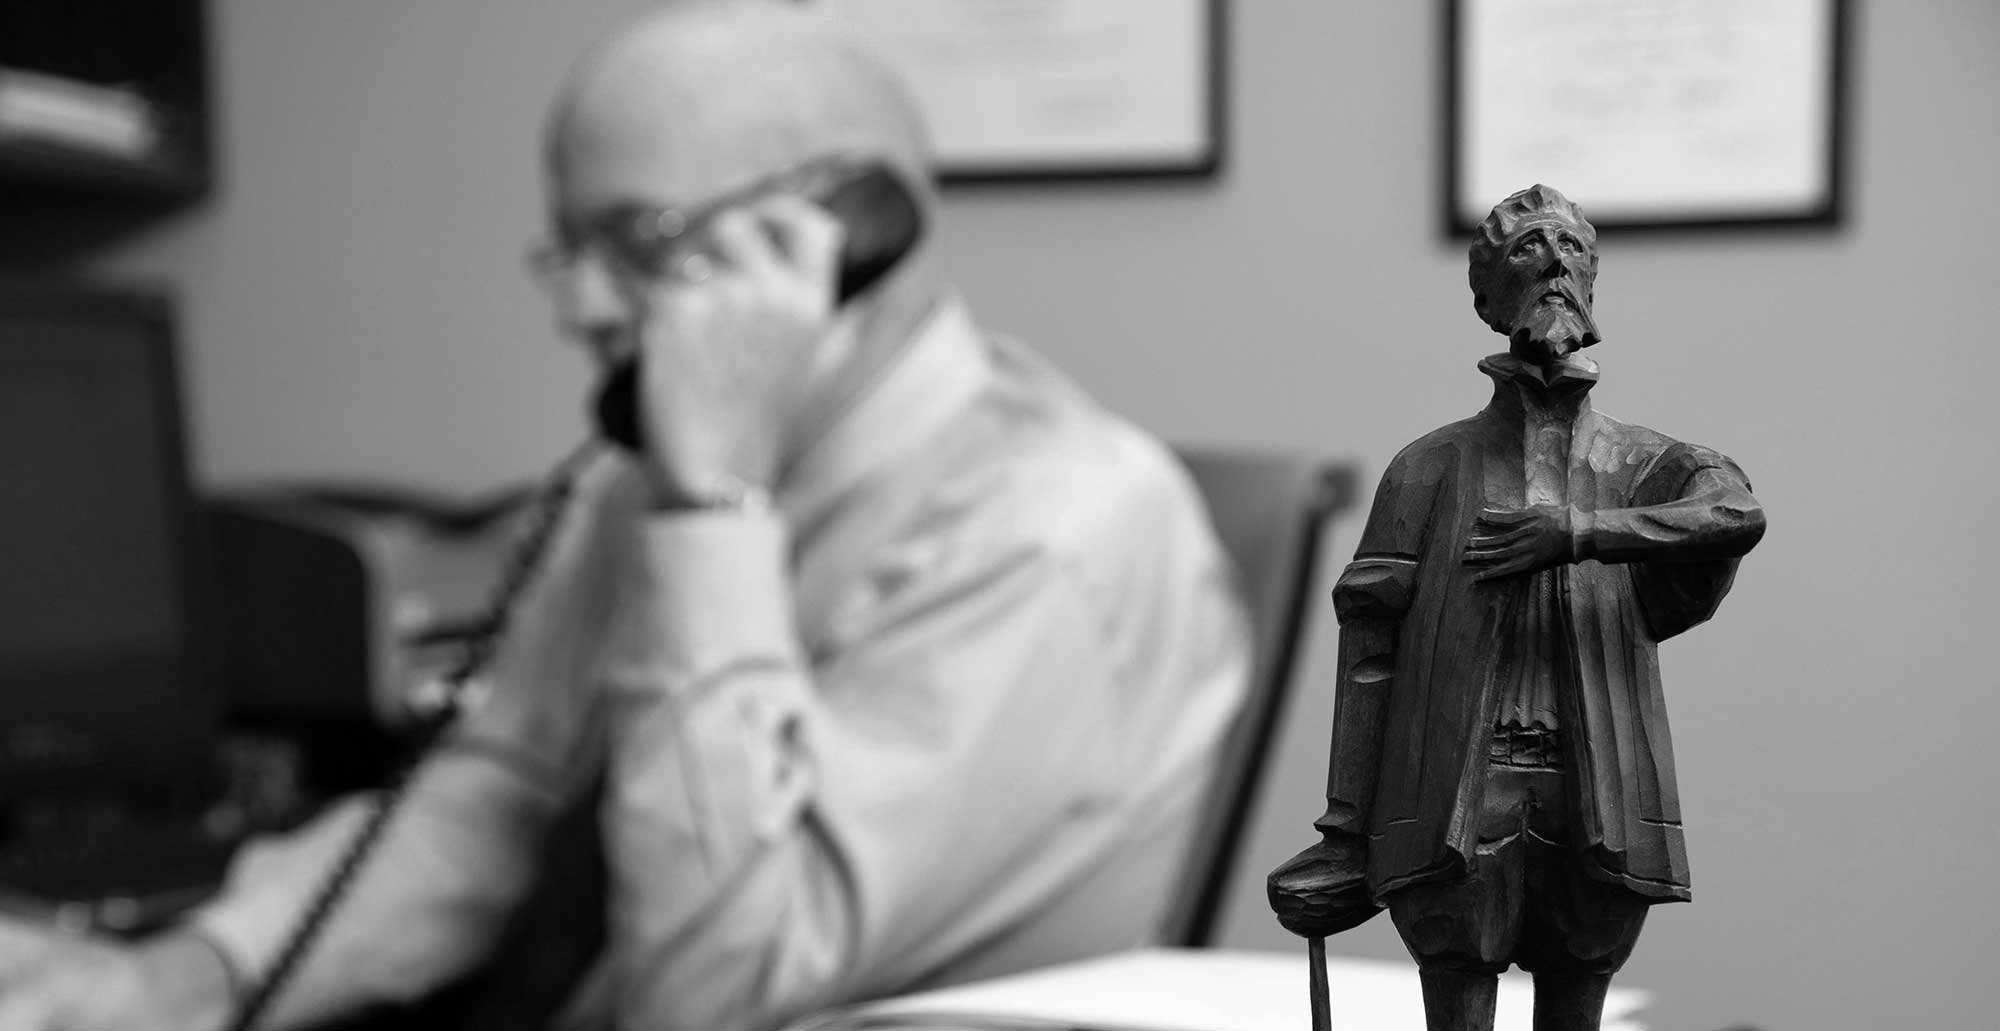 Dave Hillier in his office on the phone with statue in foreground